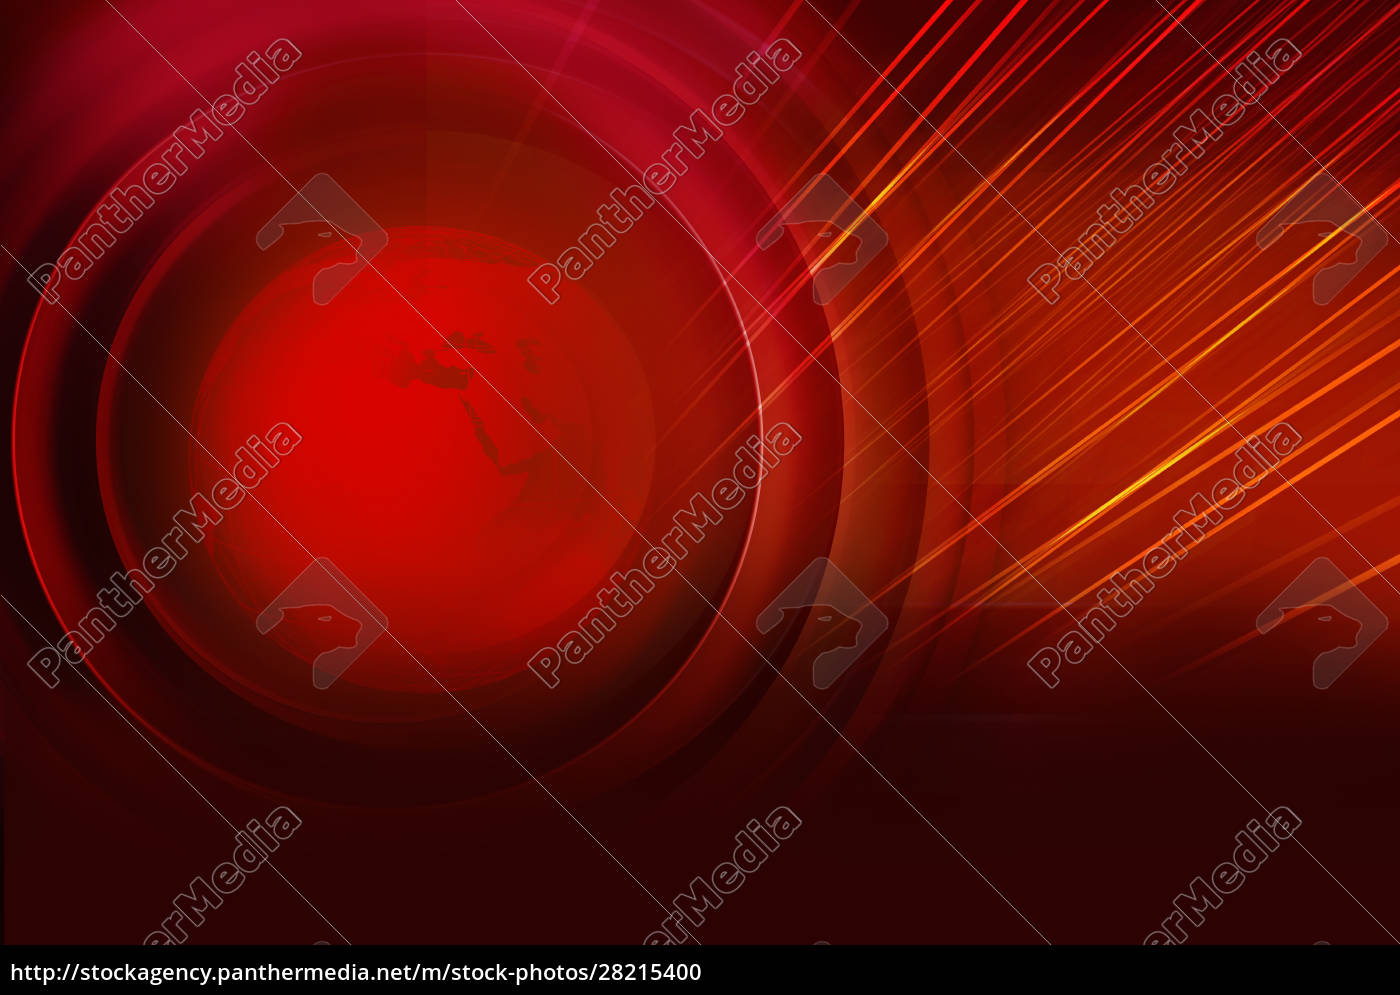 graphical, red, theme, background, with, motion - 28215400